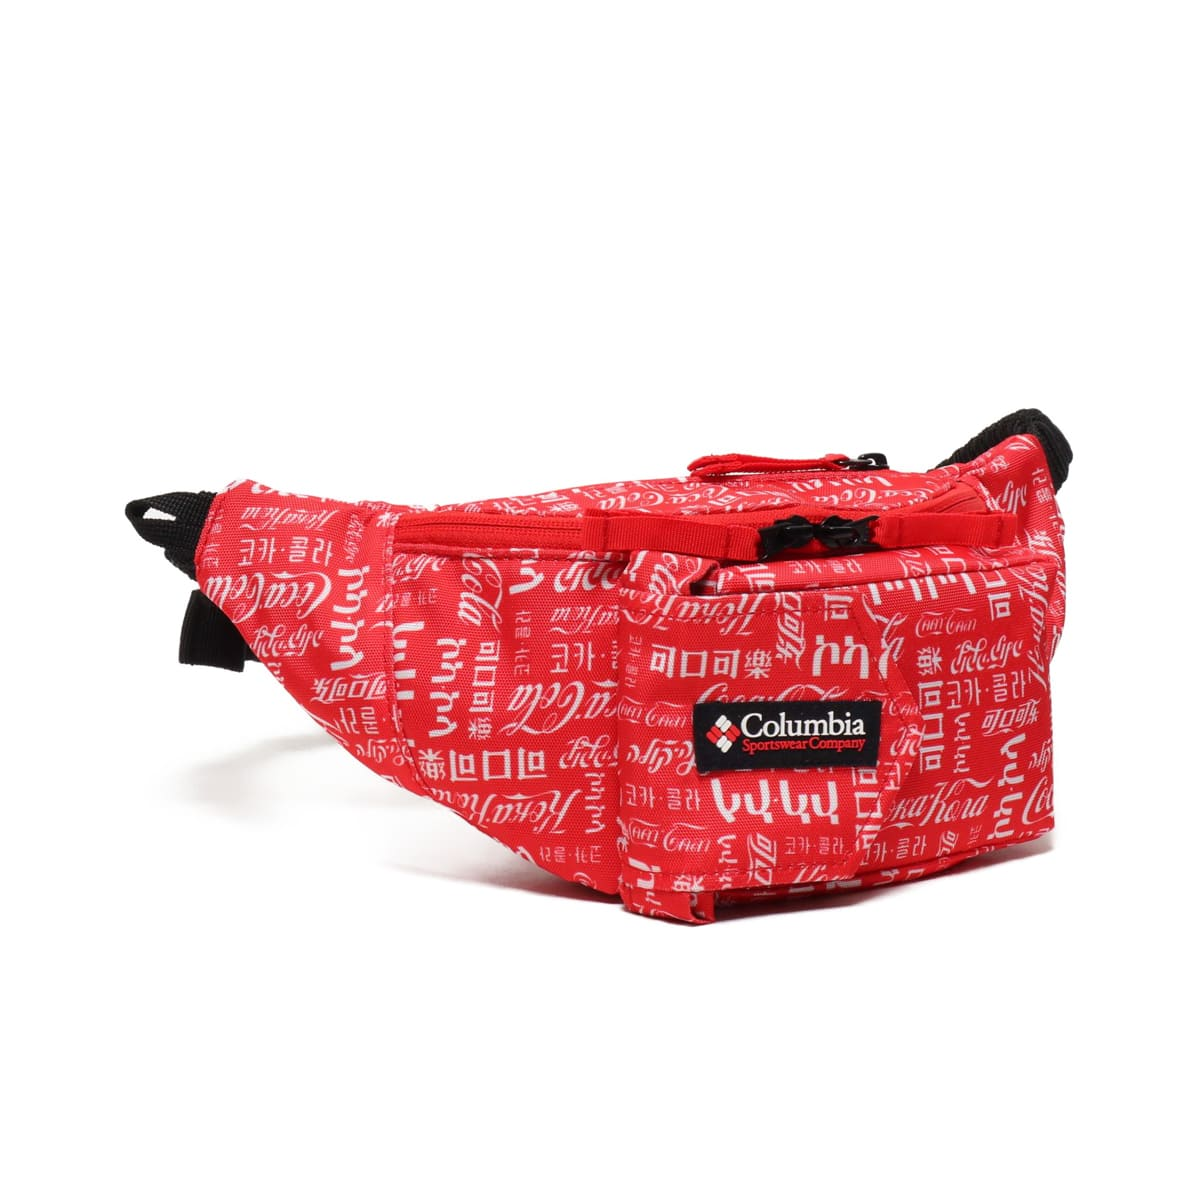 COCA-COLA x Columbia x ATMOS LAB TXT POPO PACK INTENSE RED 20SP-S_photo_large